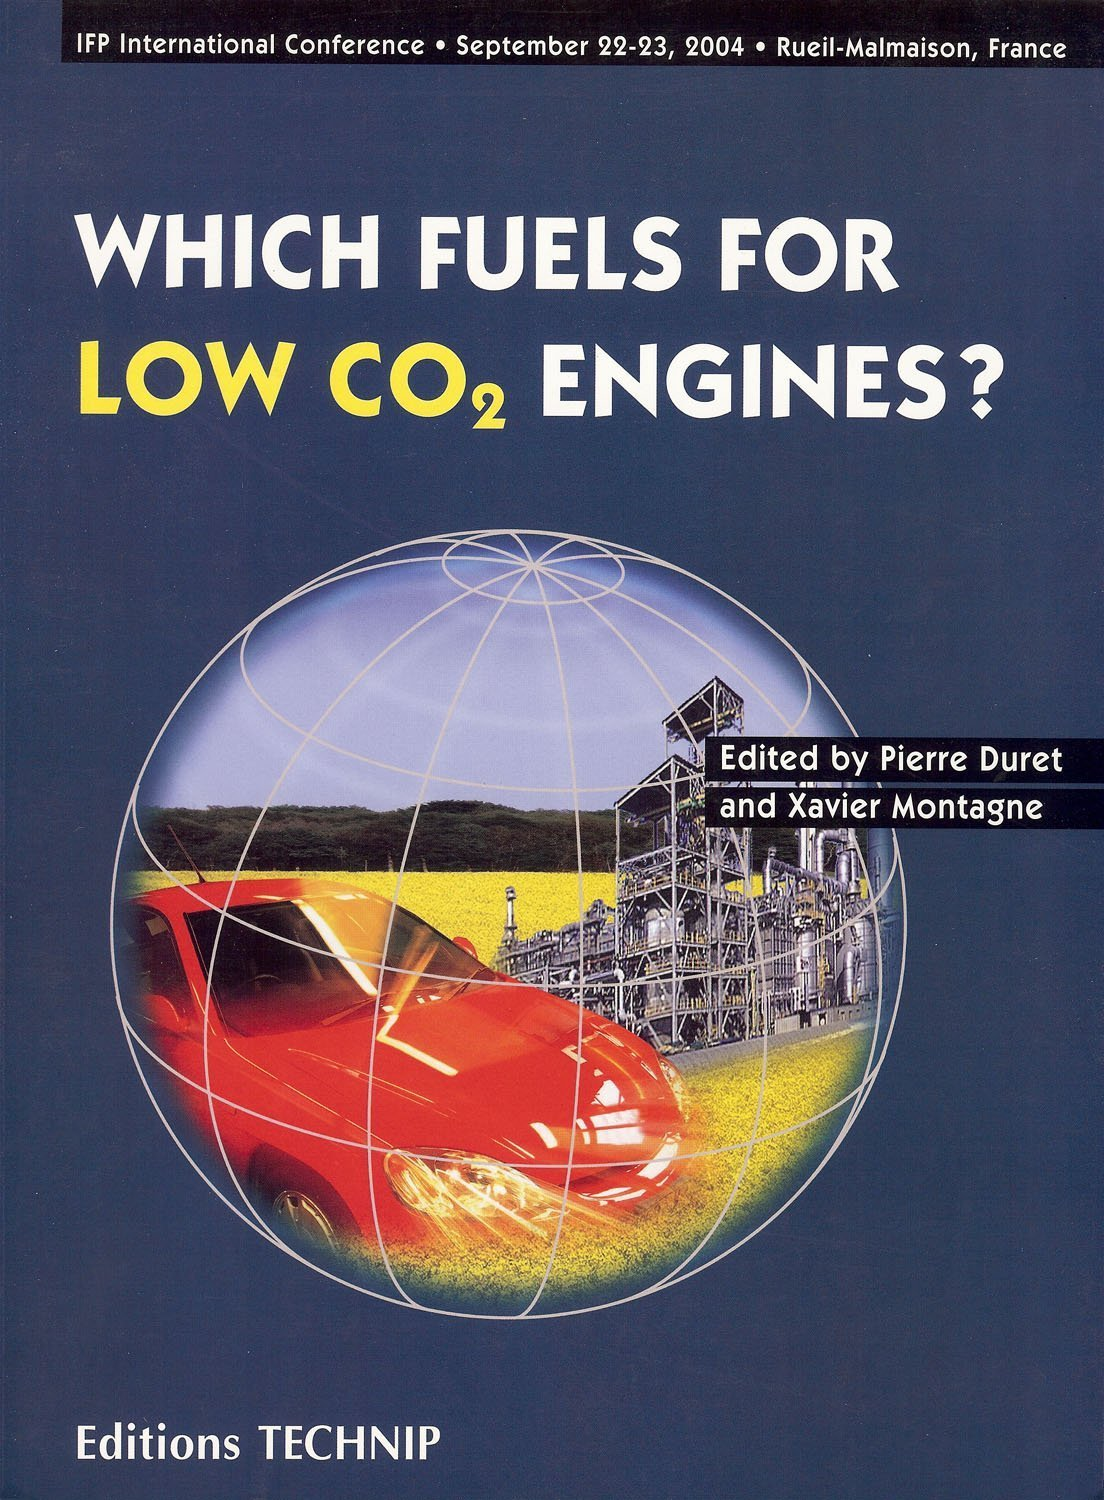 WHICH FUELS FOR LOW CO2 ENGINES